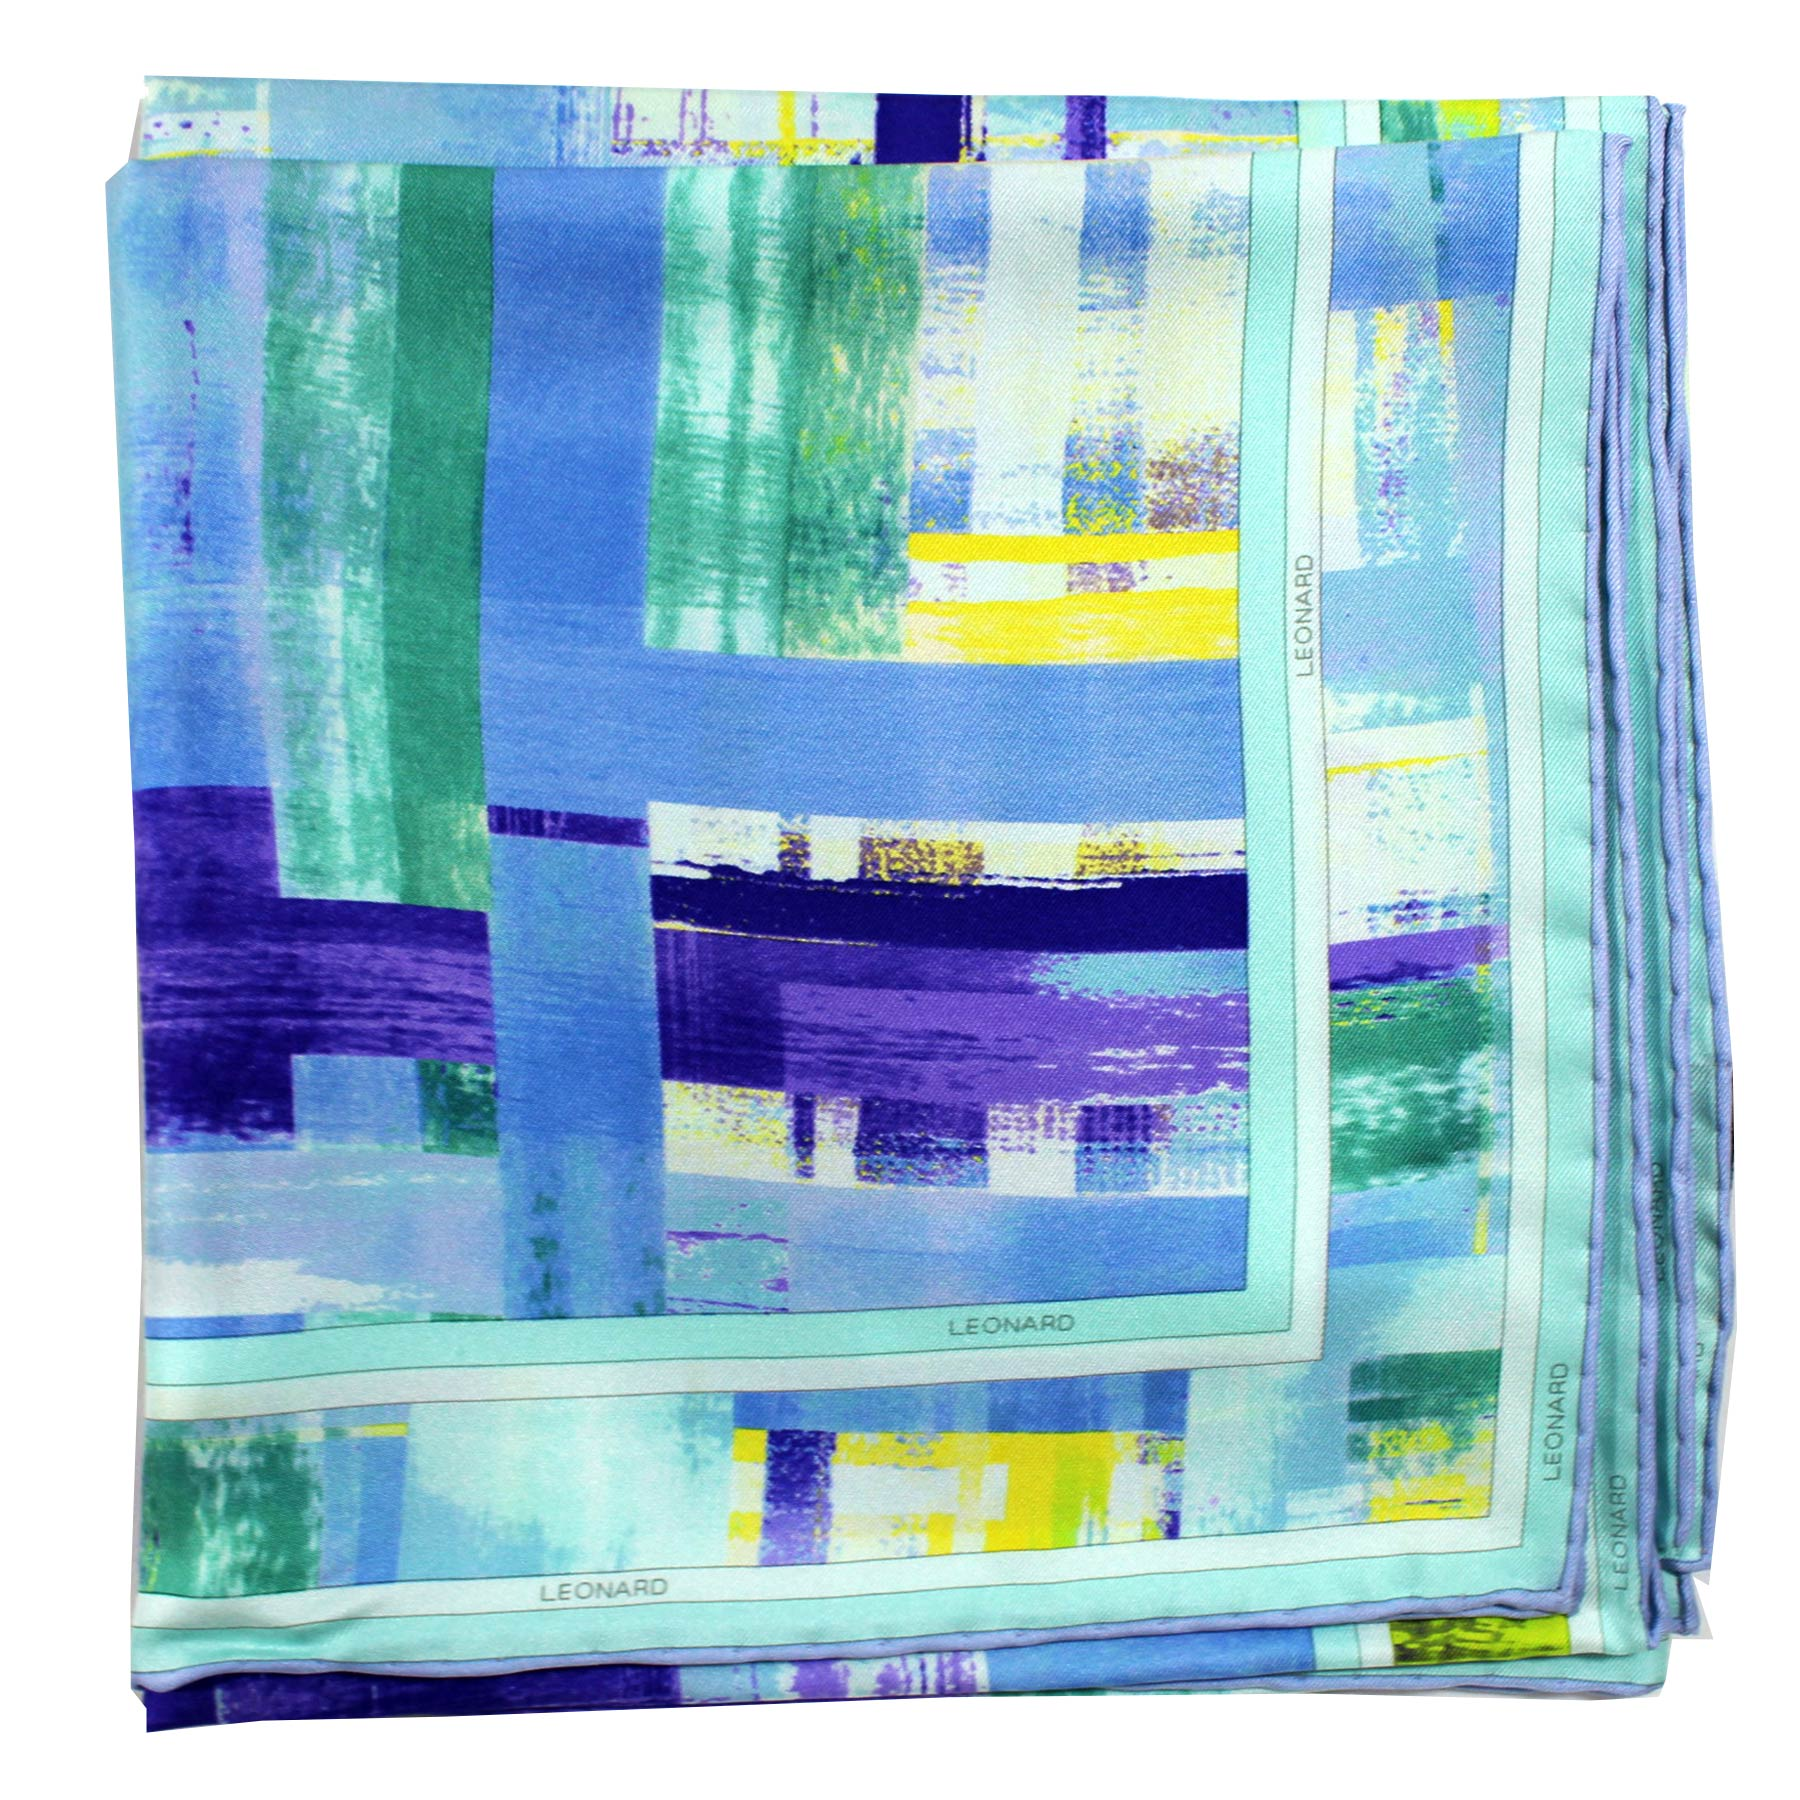 Leonard Paris Scarf Blue Purple Yellow Green Design - Twill Silk Large Square Scarf SALE